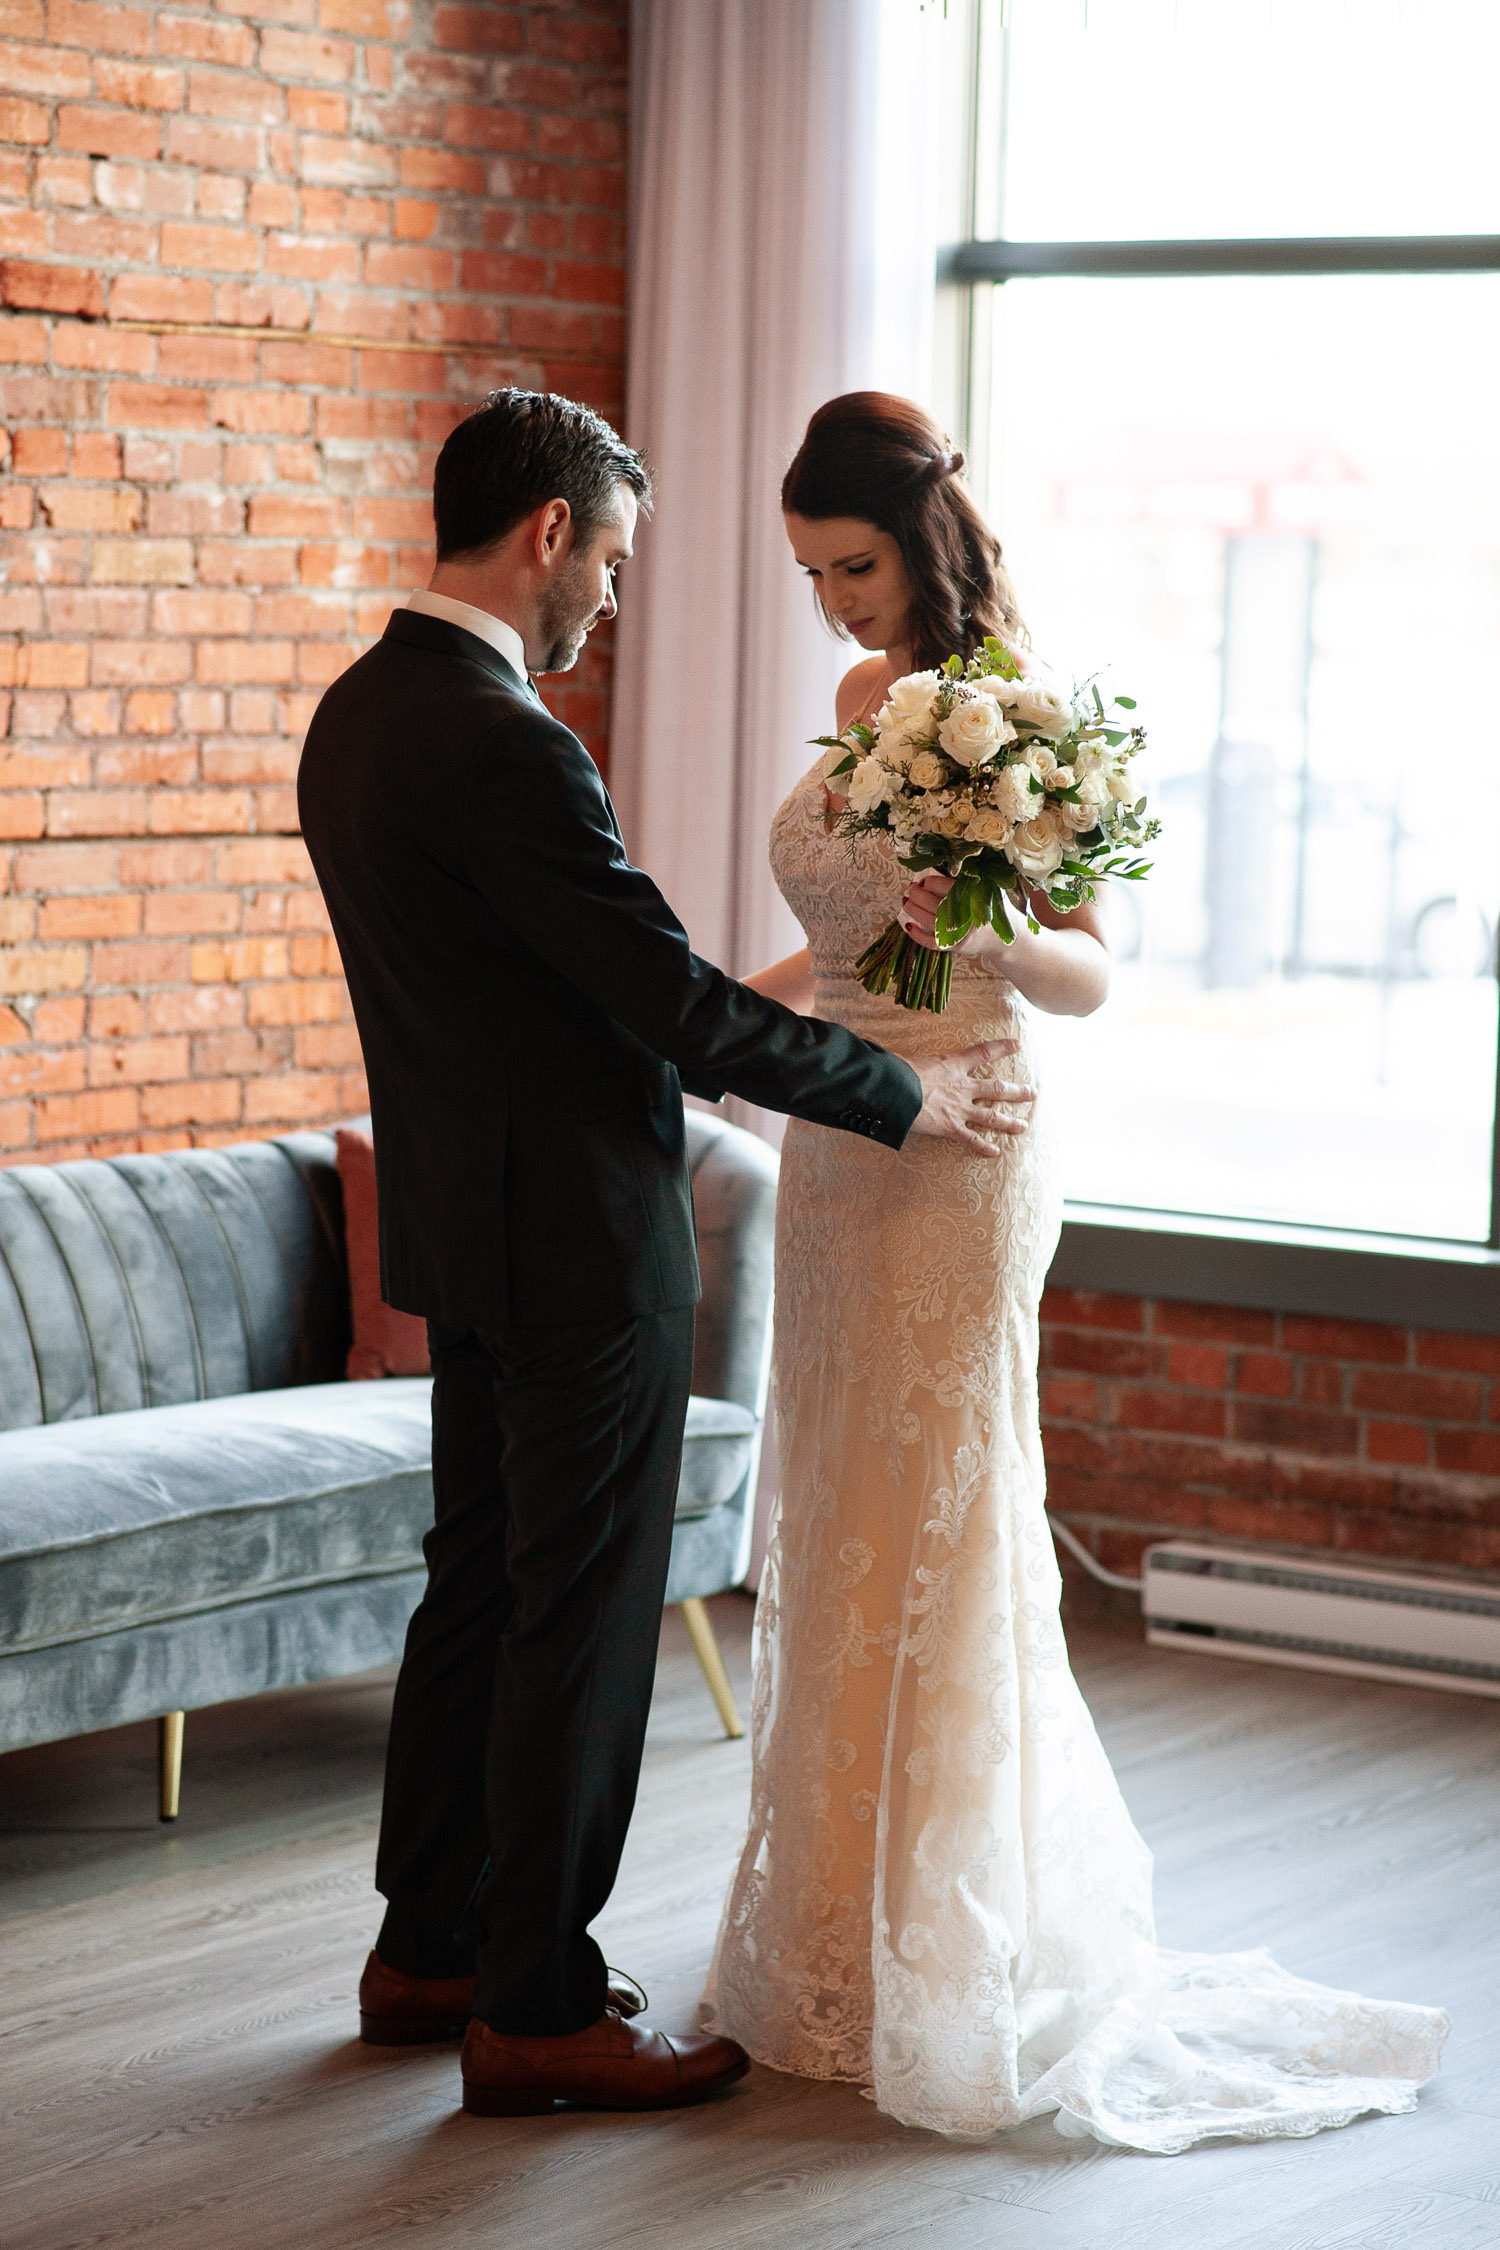 Bride and groom during their first look at Venue 308 captured by Calgary wedding photographer Tara Whittaker